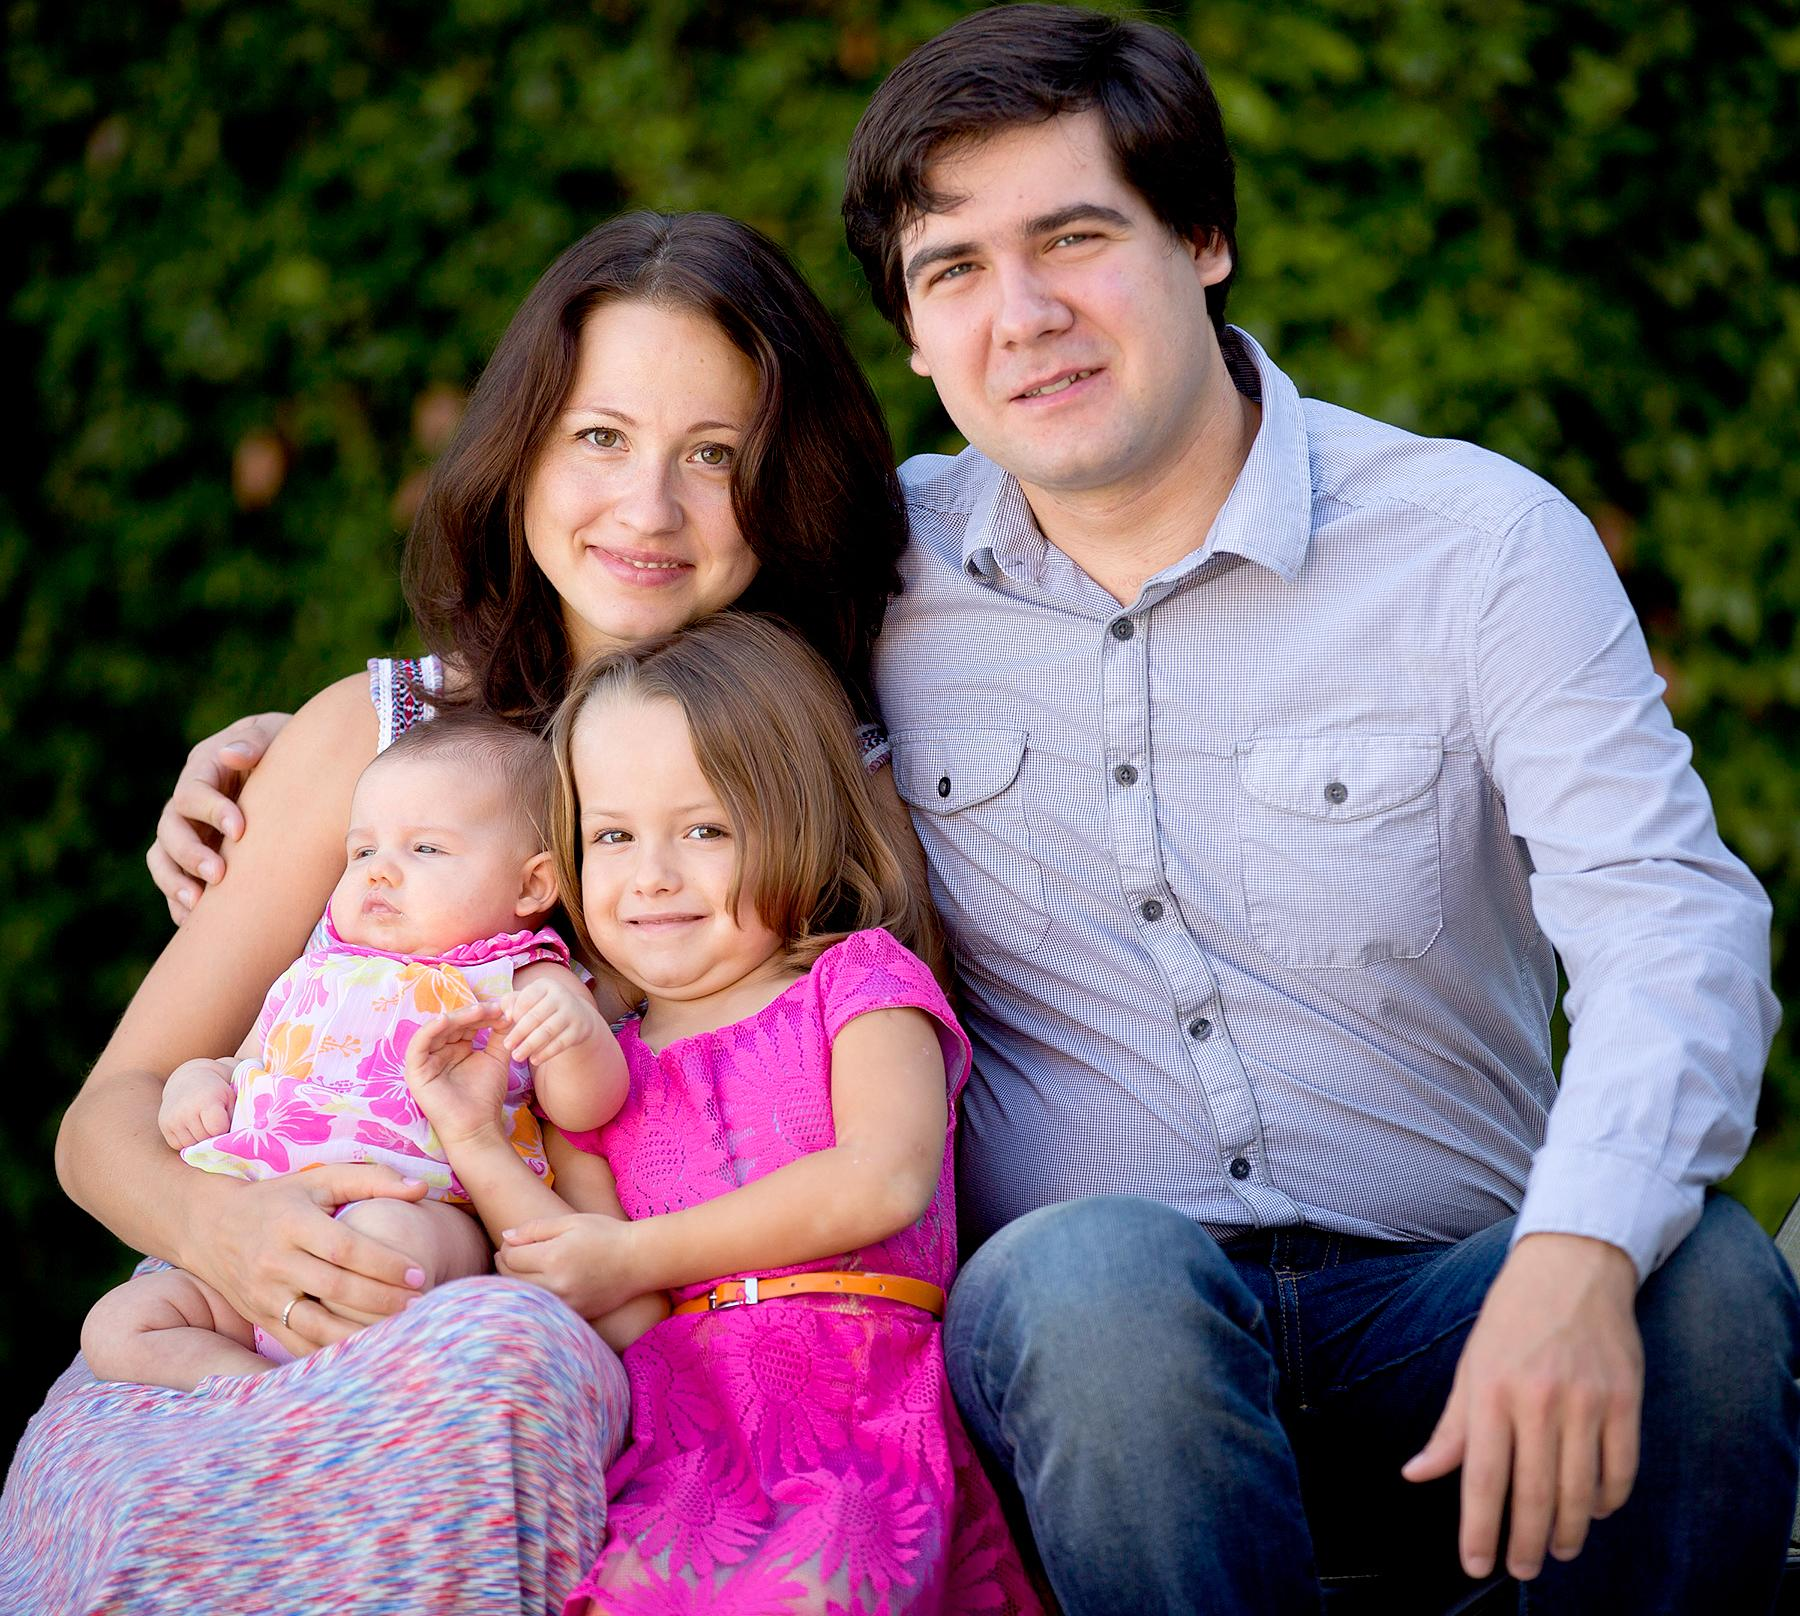 Famed Pianist Vadym Kholodenko's Two Young Daughters Likely Died of Asphyxia